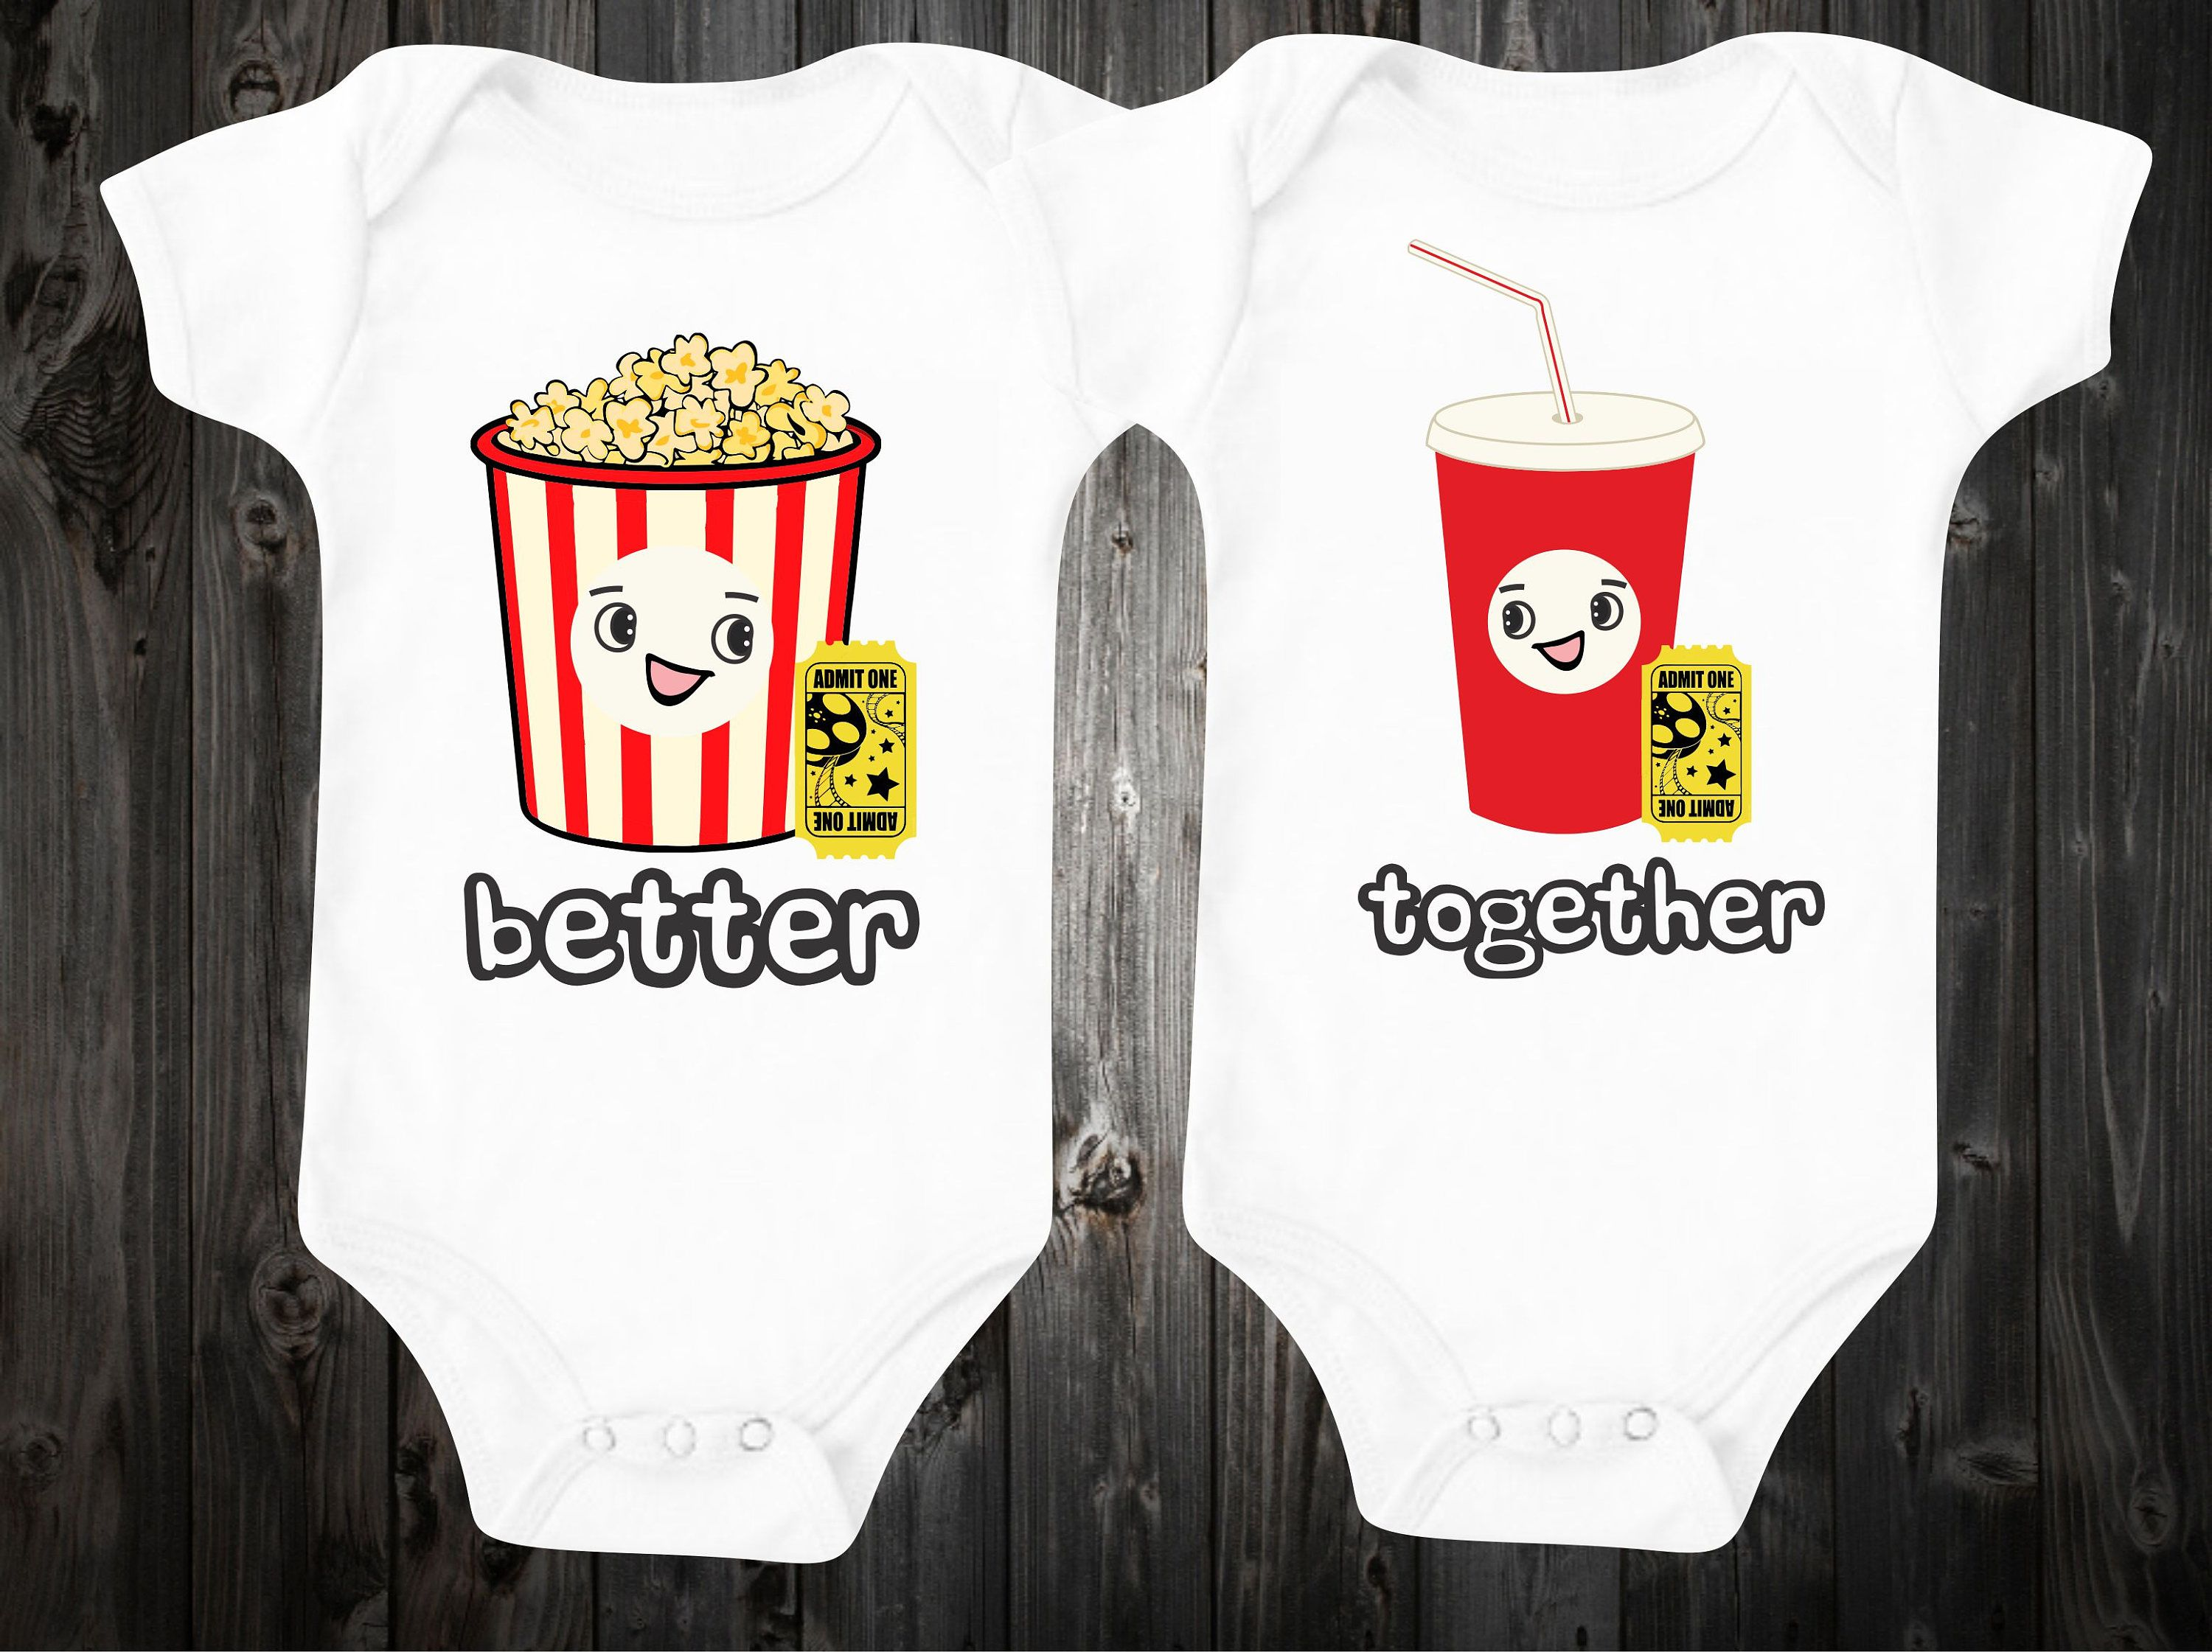 Better To her Movie Theme Baby esies Twin Outfits Funny